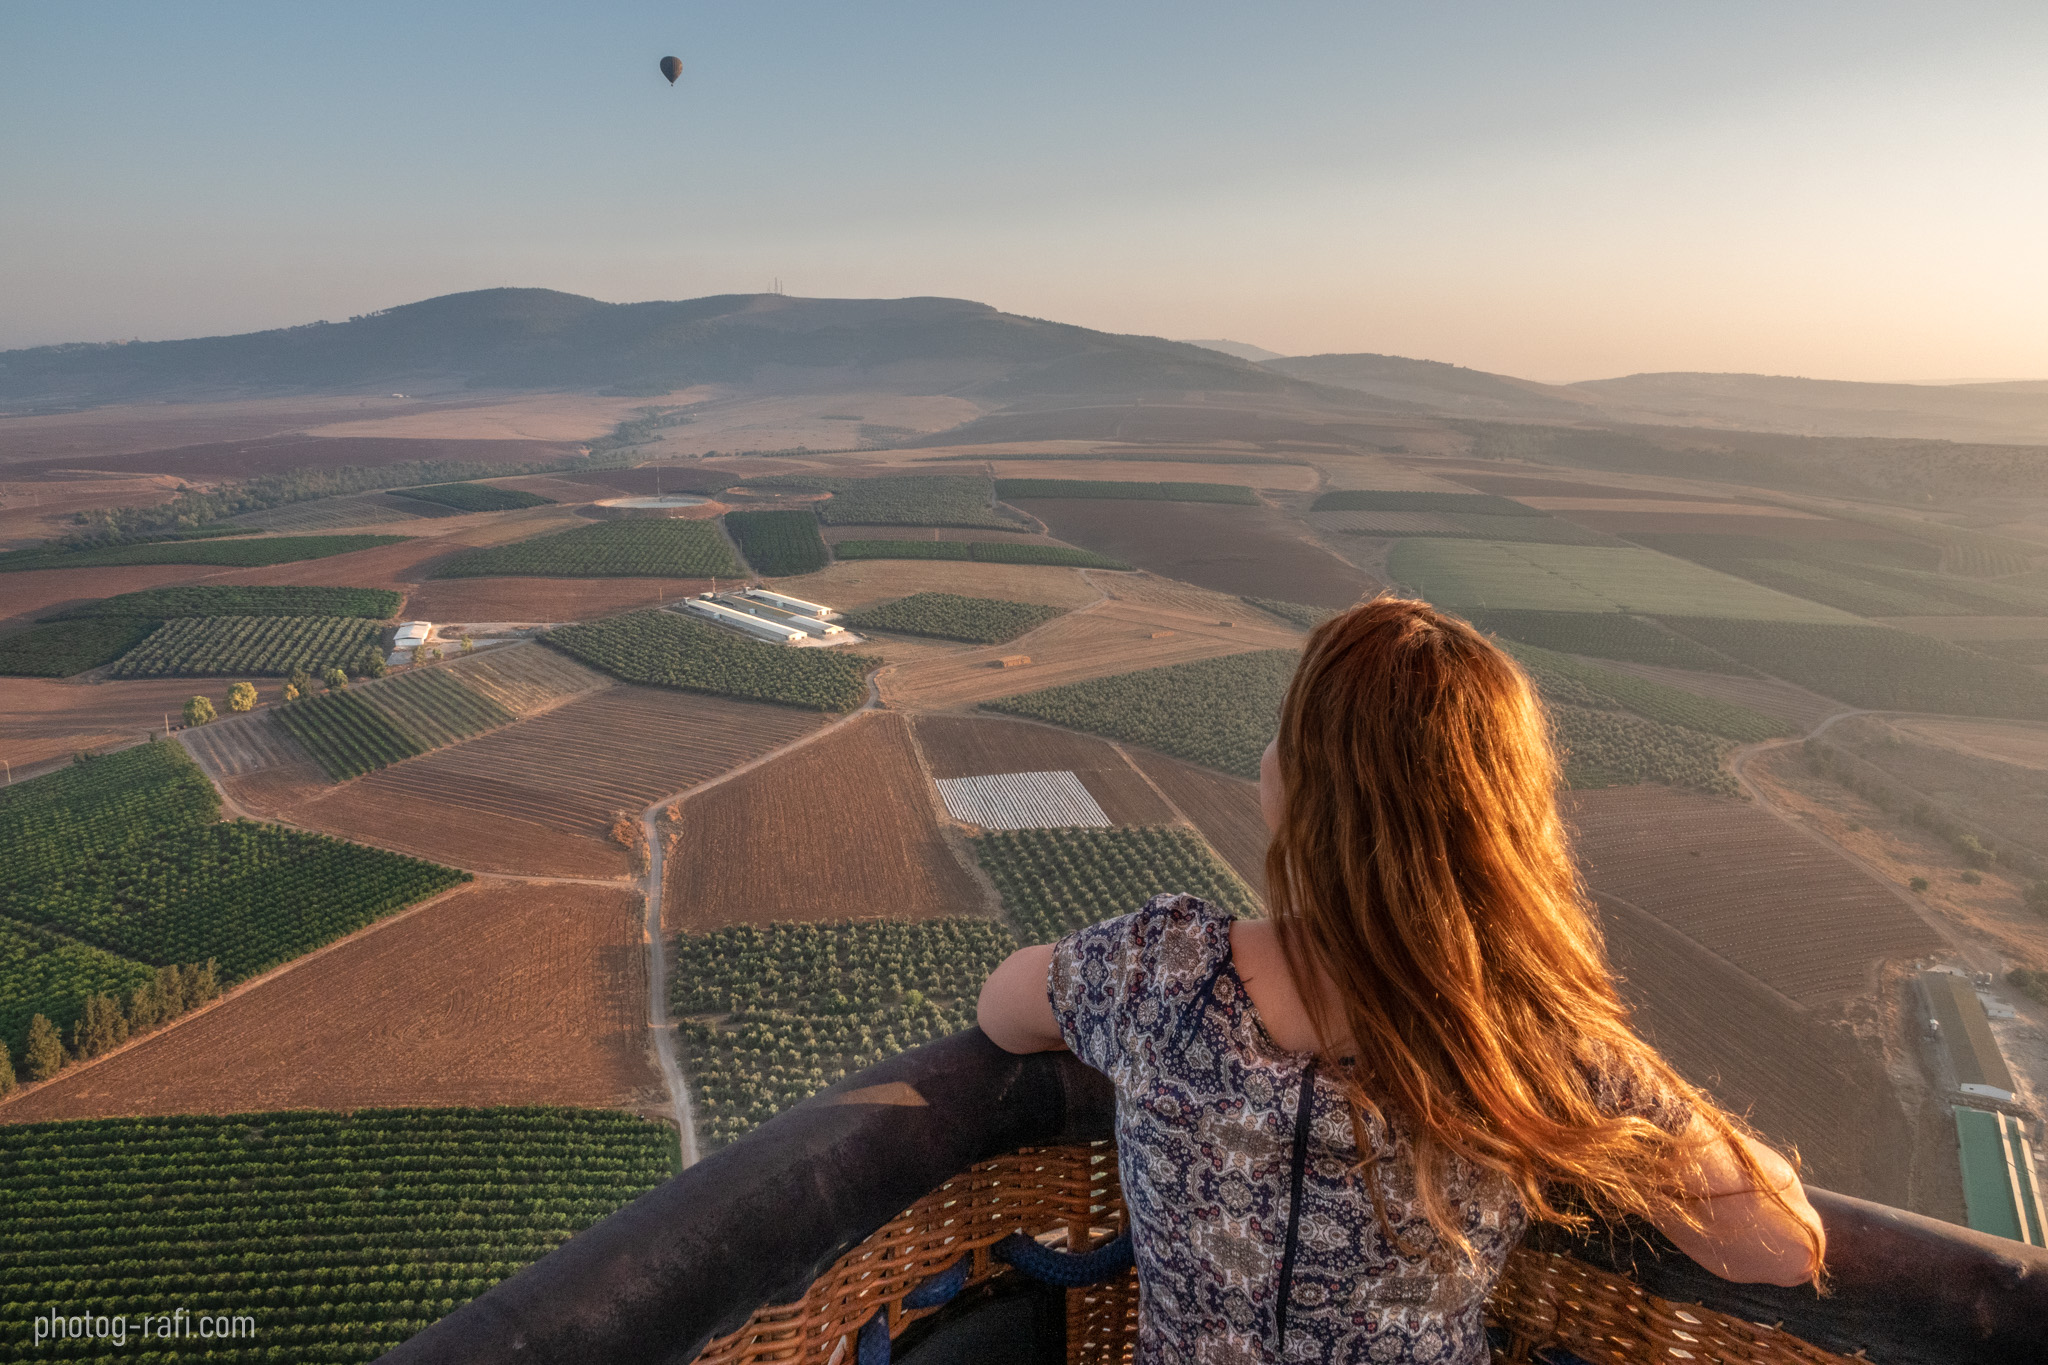 Hot air balloon in Izrael valley